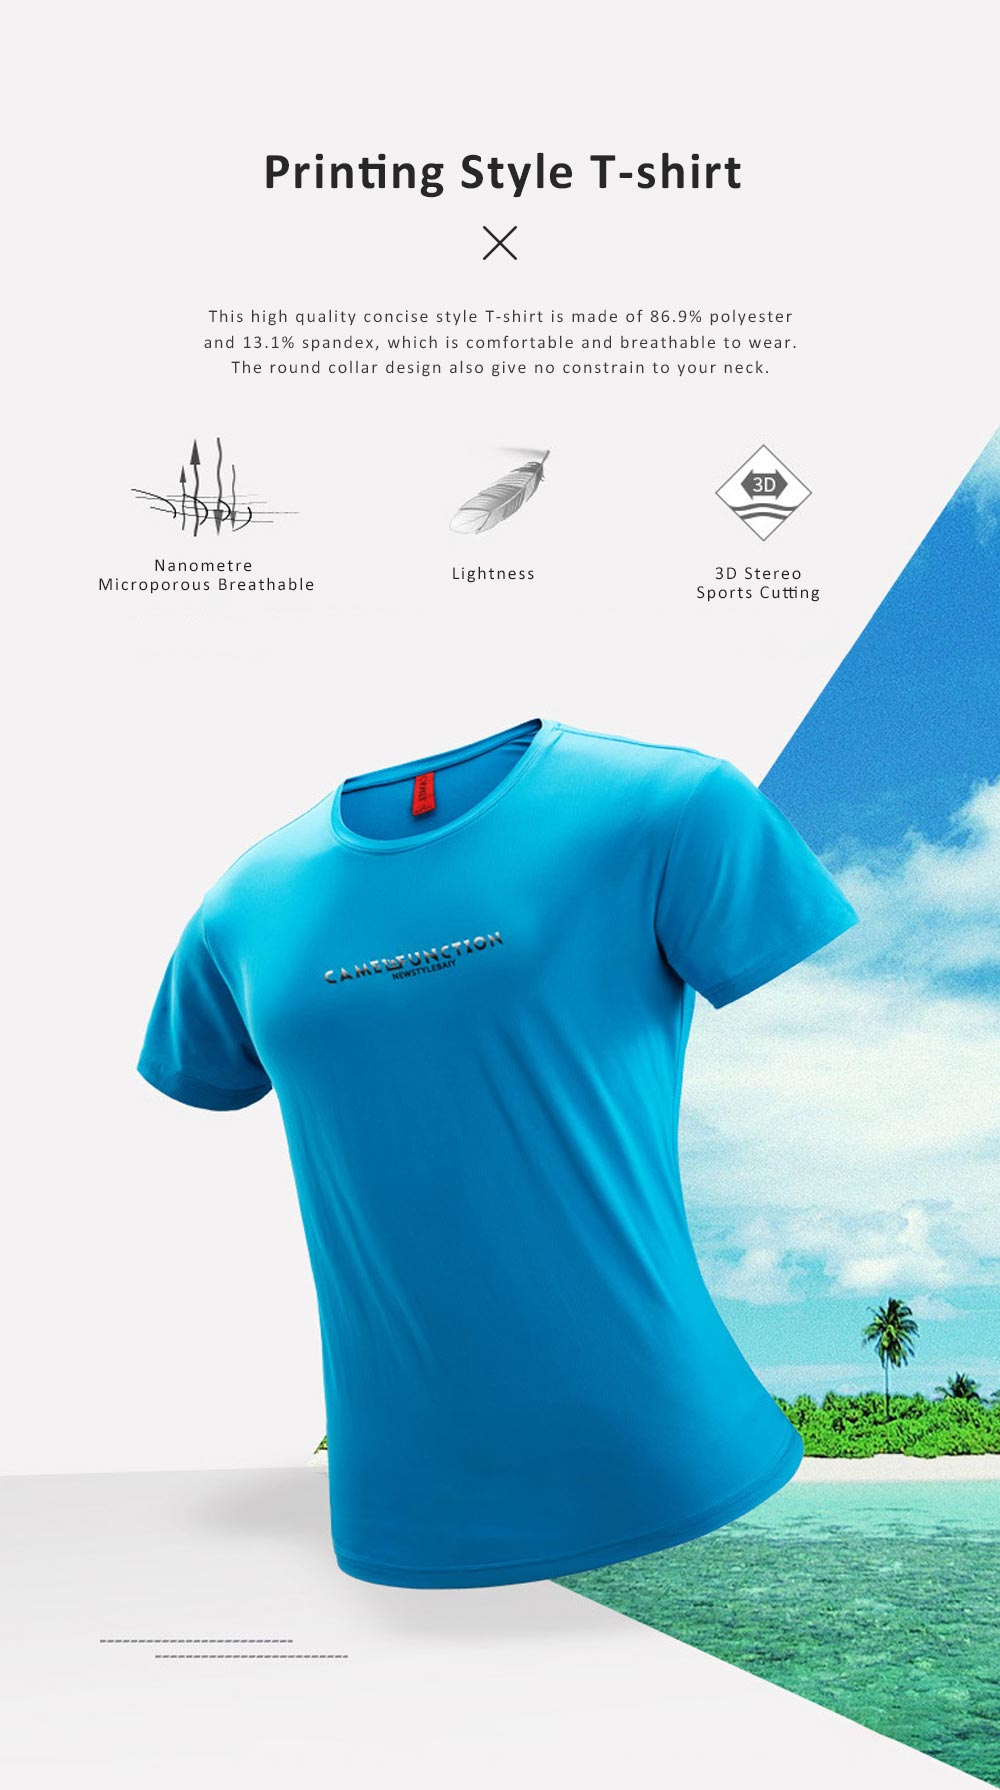 2019 Latest Concise Style Summer T-shirt for Men, High Quality Leisure Printing Round Collar Shirt for Youth 0